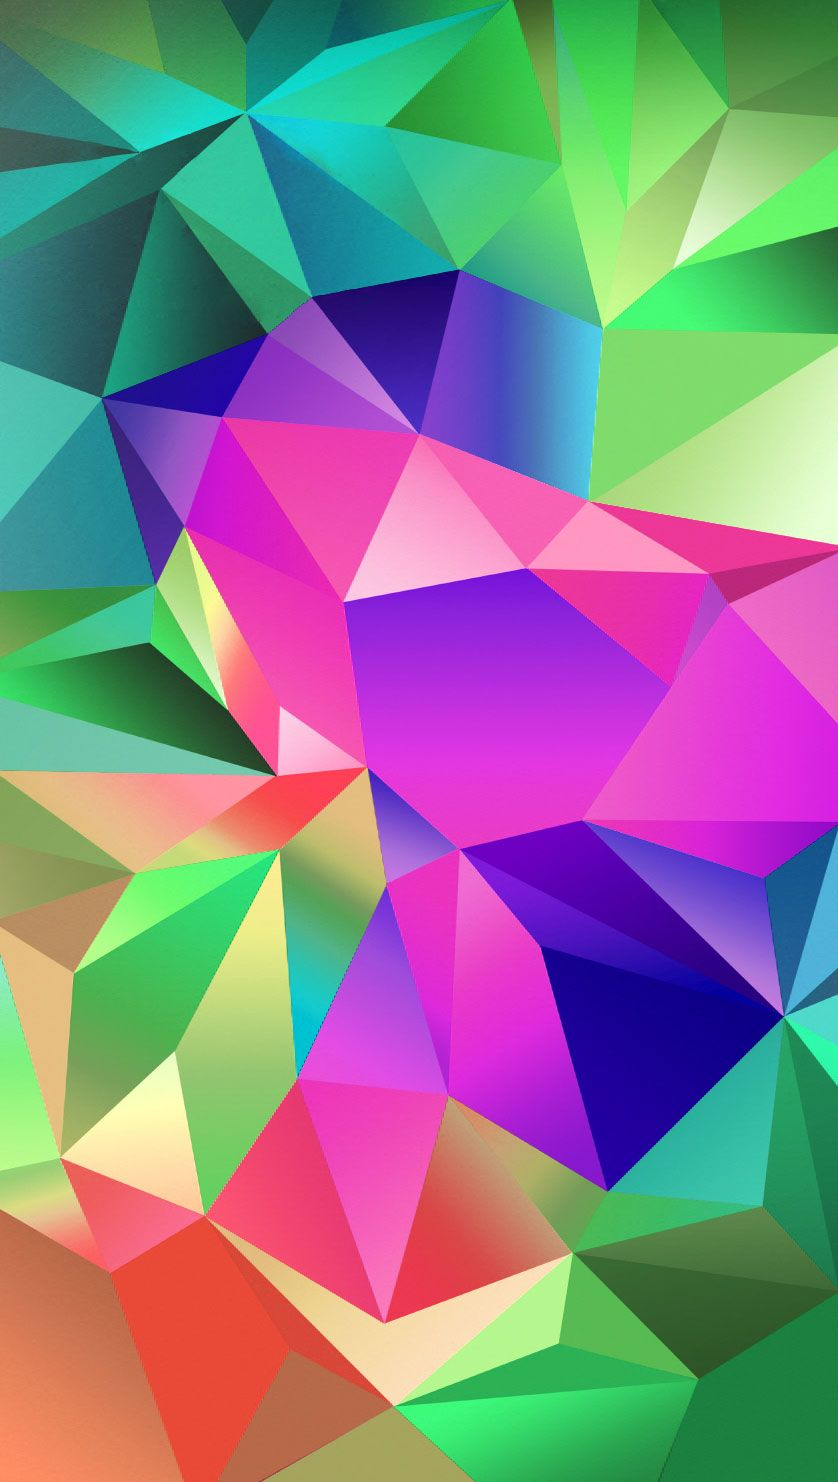 How to use scrapbook on galaxy s5 - Samsung Galaxy S5 Wallpapers Graffies